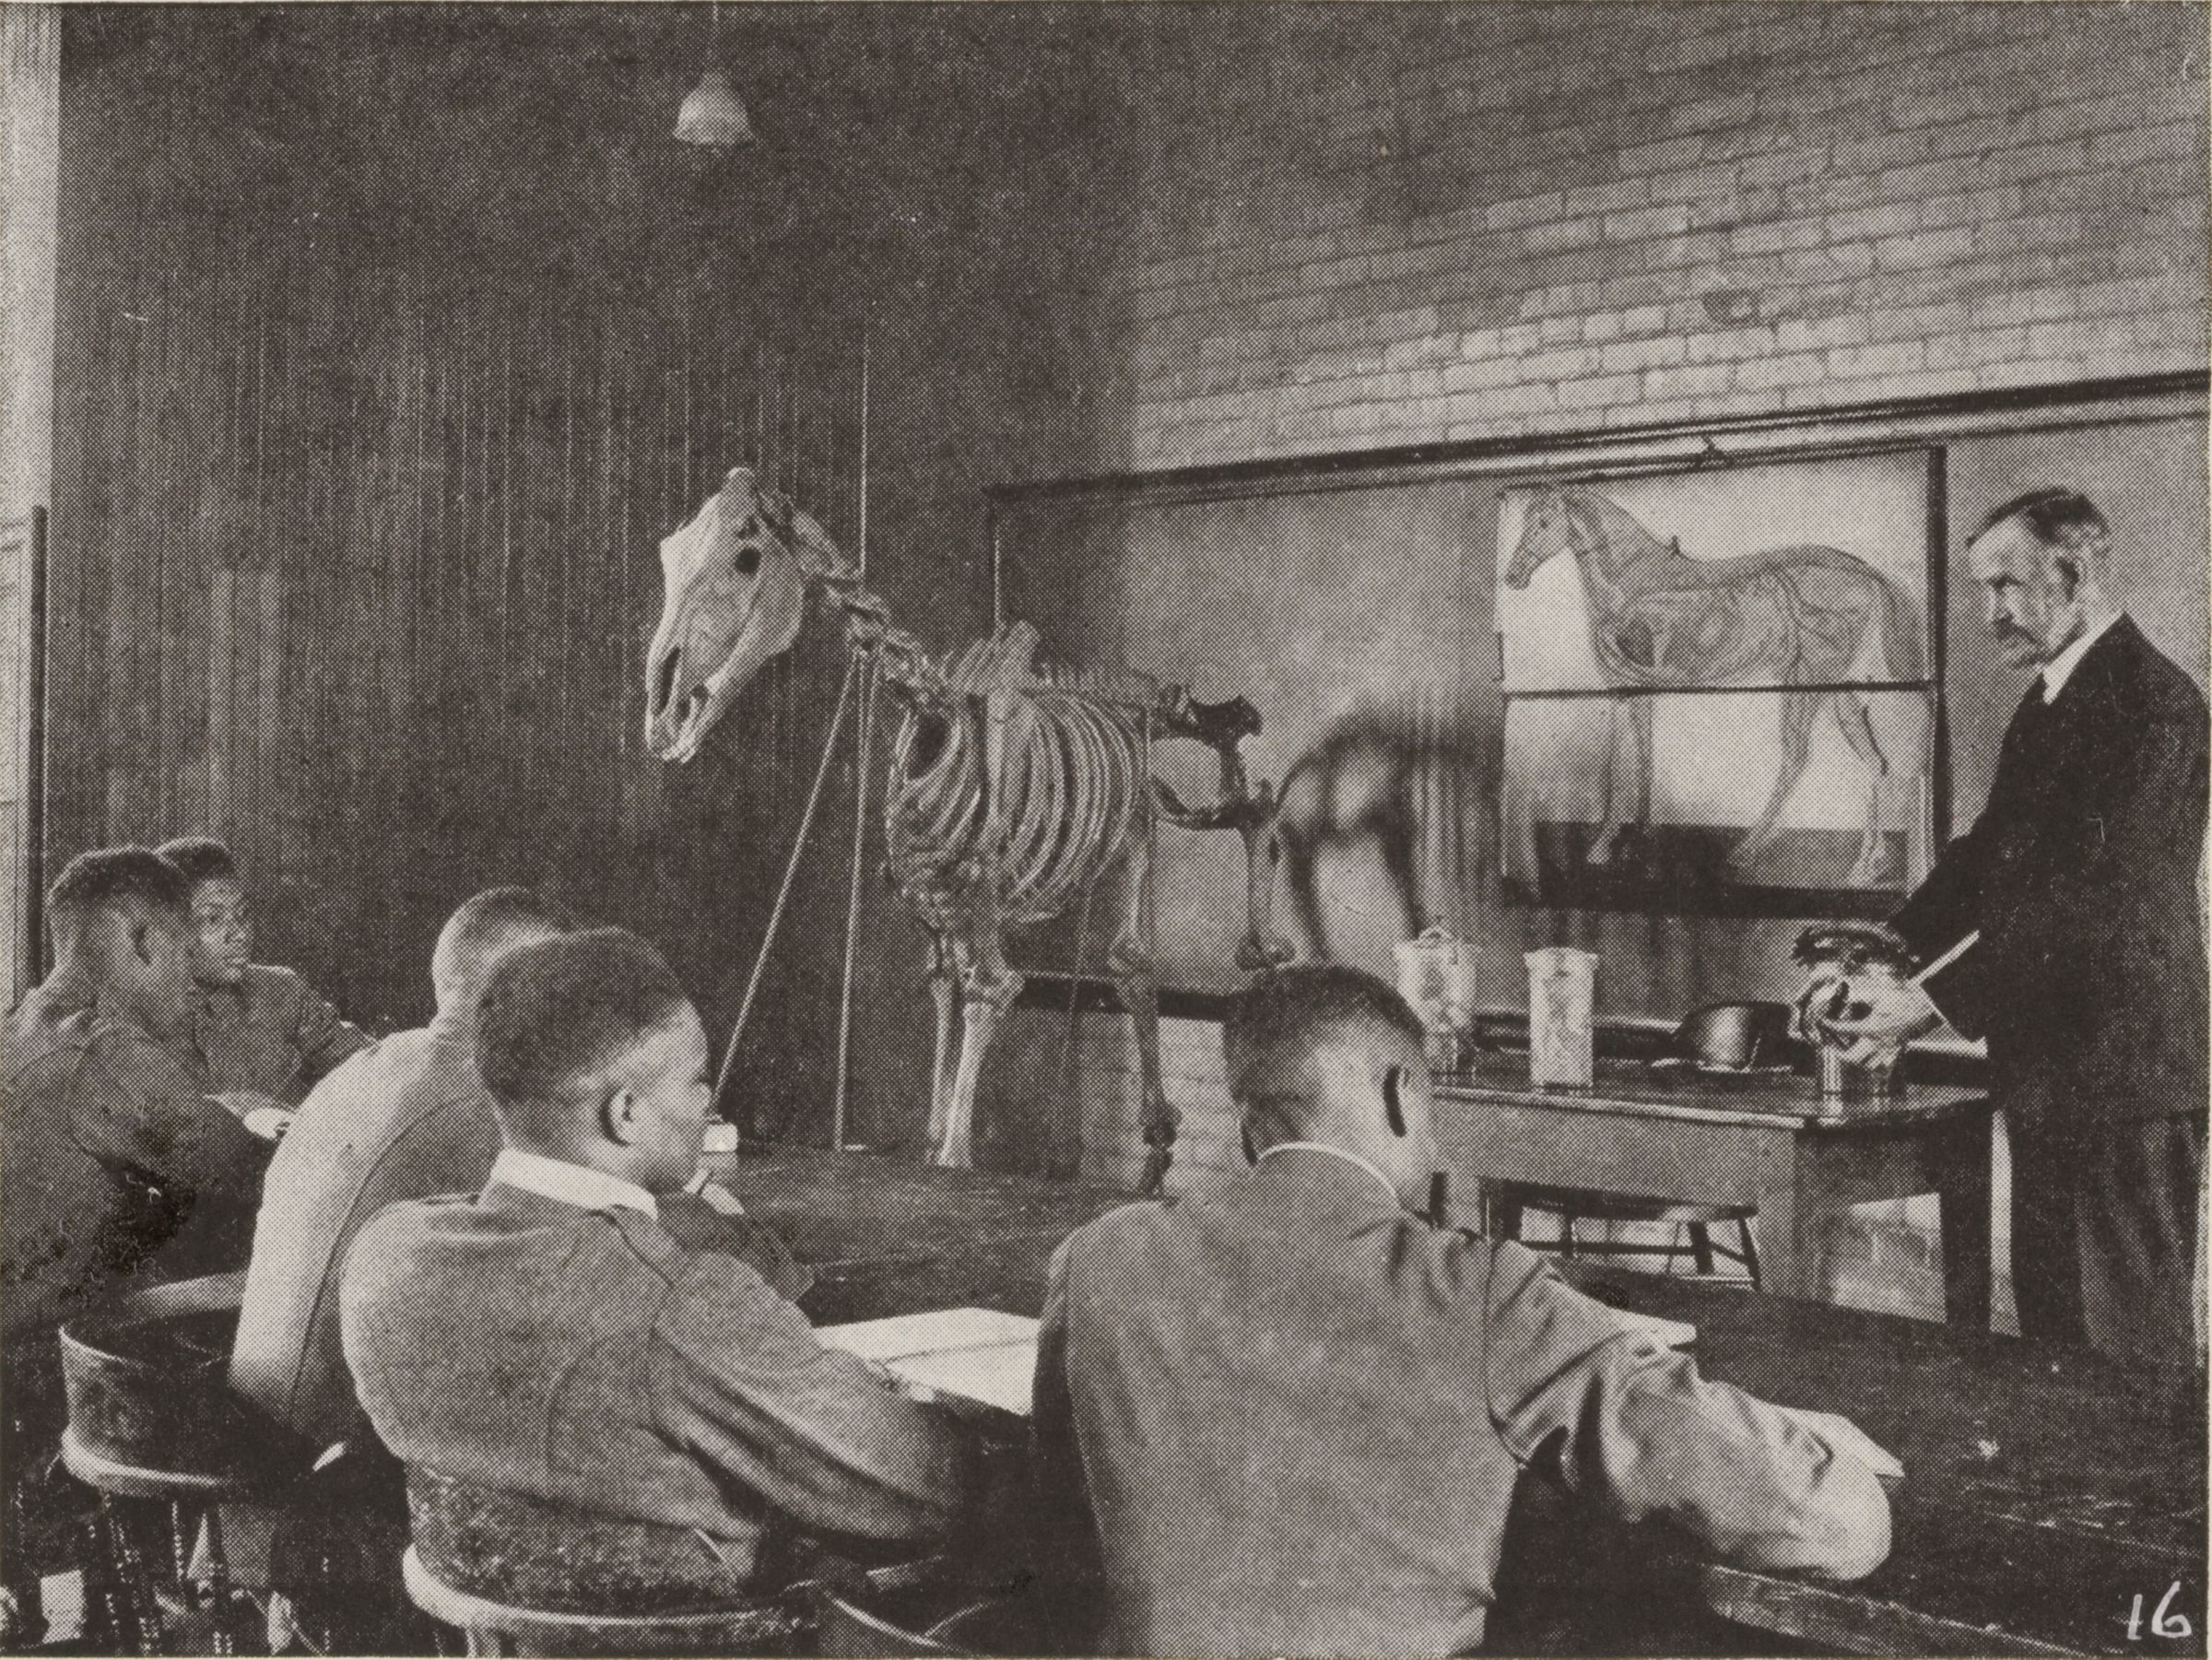 Races, Negroes: United States. Virginia. Hampton. Hampton Normal And Industrial School: Training In Scientific Agriculture: Agricultural Class At Hampton Institute Studying The Anatomy Of The Horse